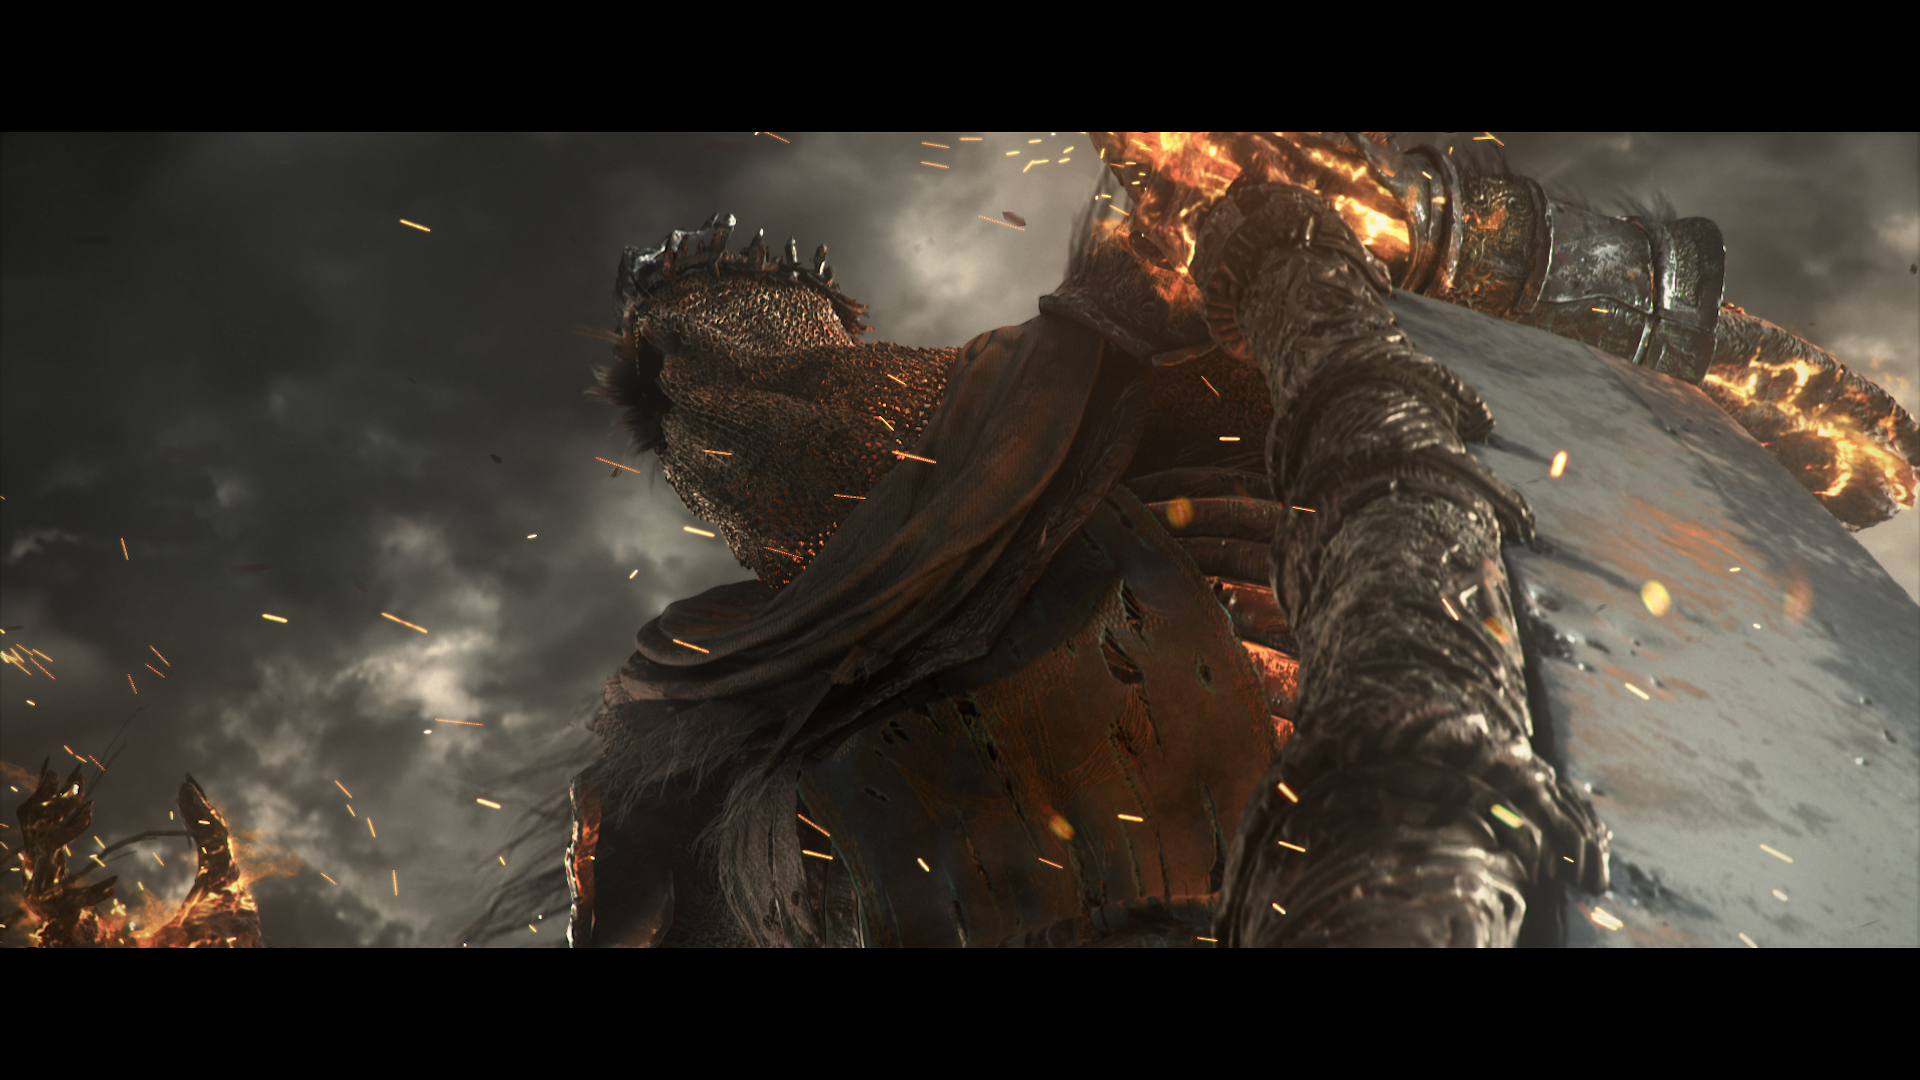 Dark Souls 3 Animated Wallpaper